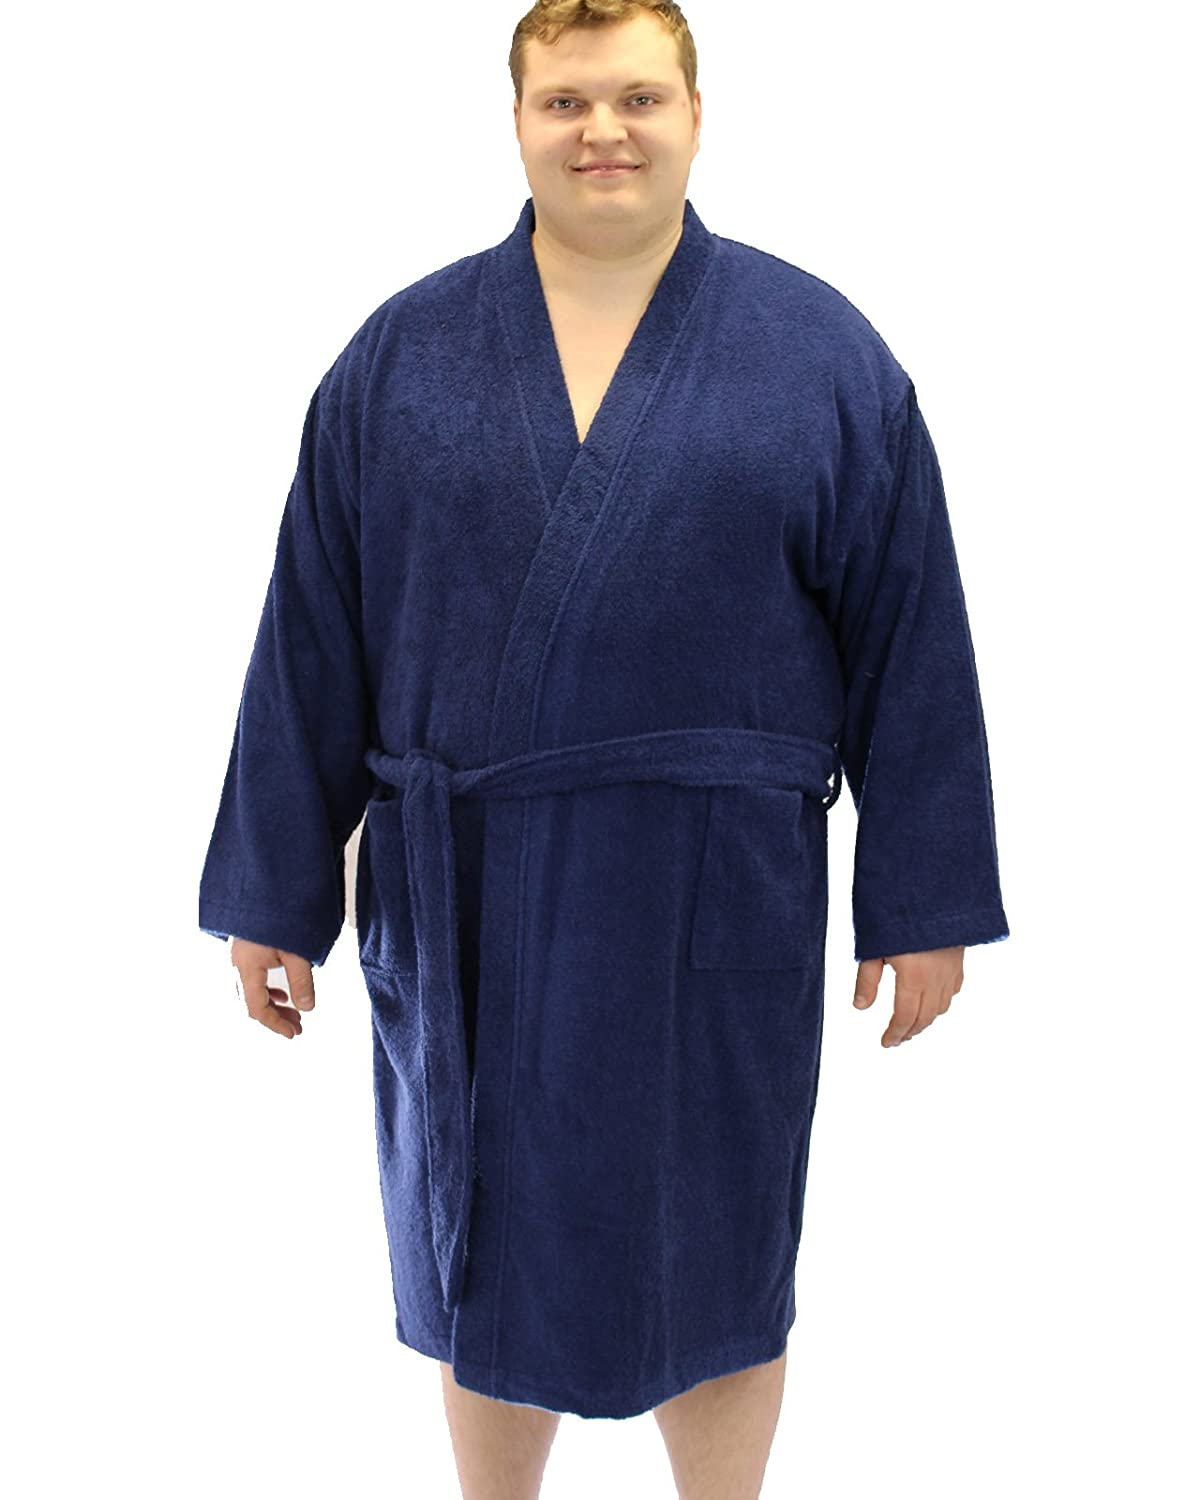 Espionage Men's Towel Dressing Gown Robe